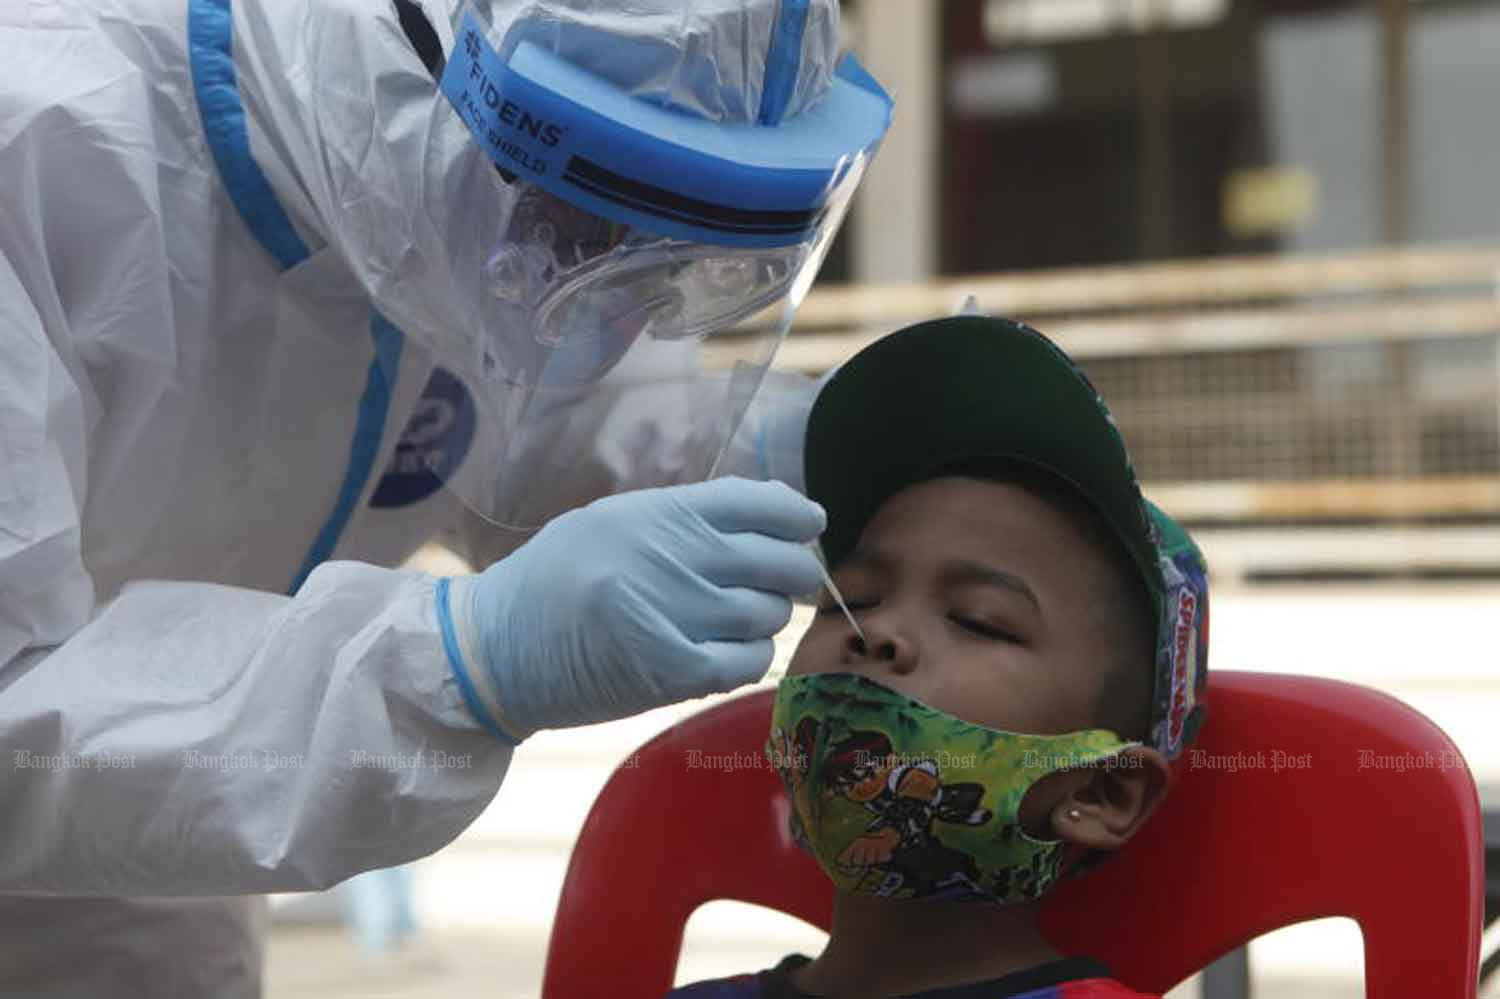 A disease control worker collects a nasal swab from a boy during active Covid-19 case finding in Phasicharoen district, Bangkok, last Thursday. (Photo: Nutthawat Wicheanbut)